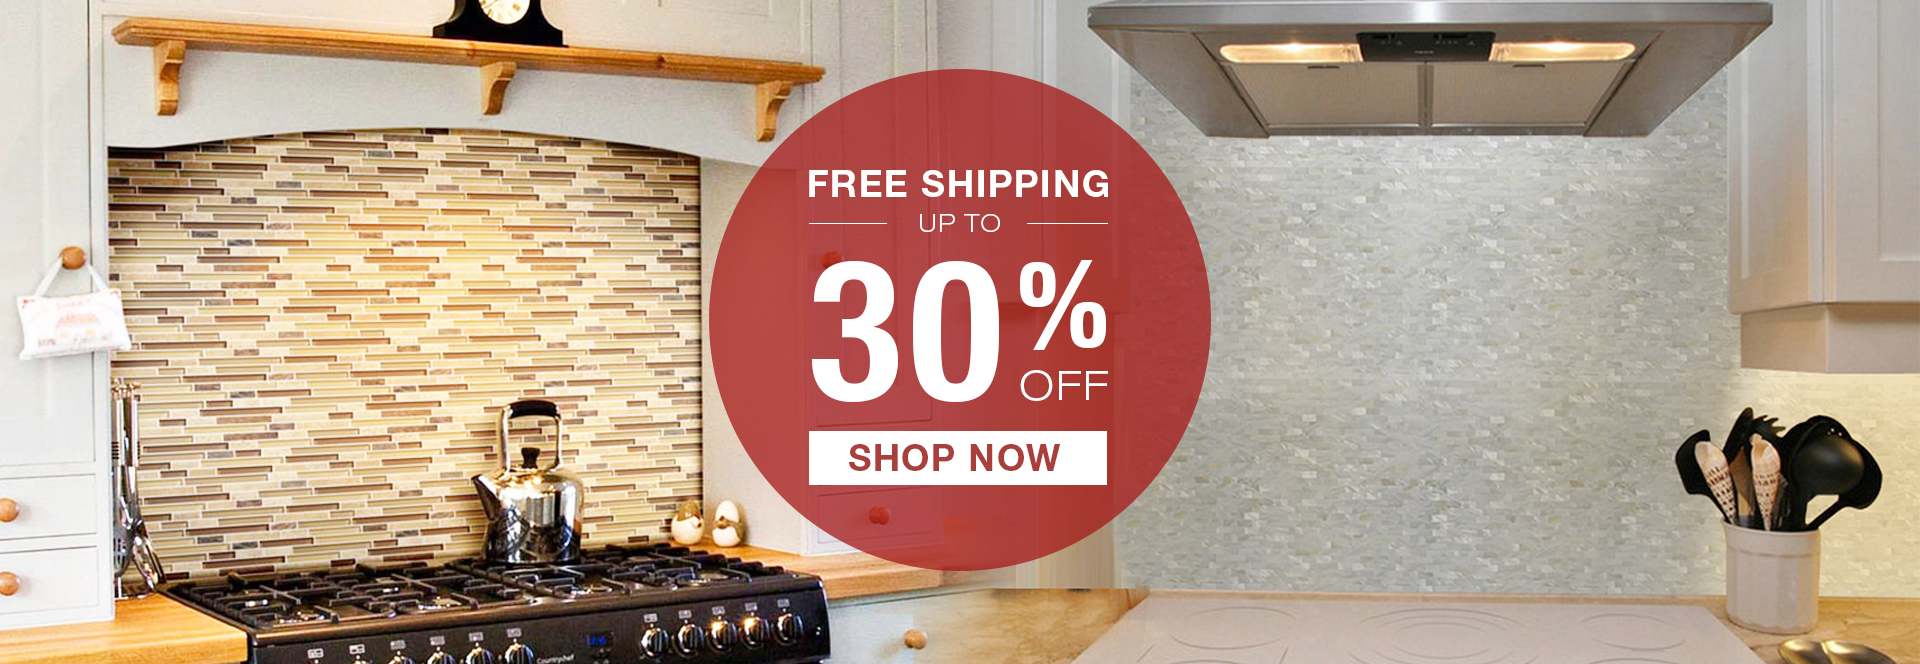 Backsplash Tile in Big Discount